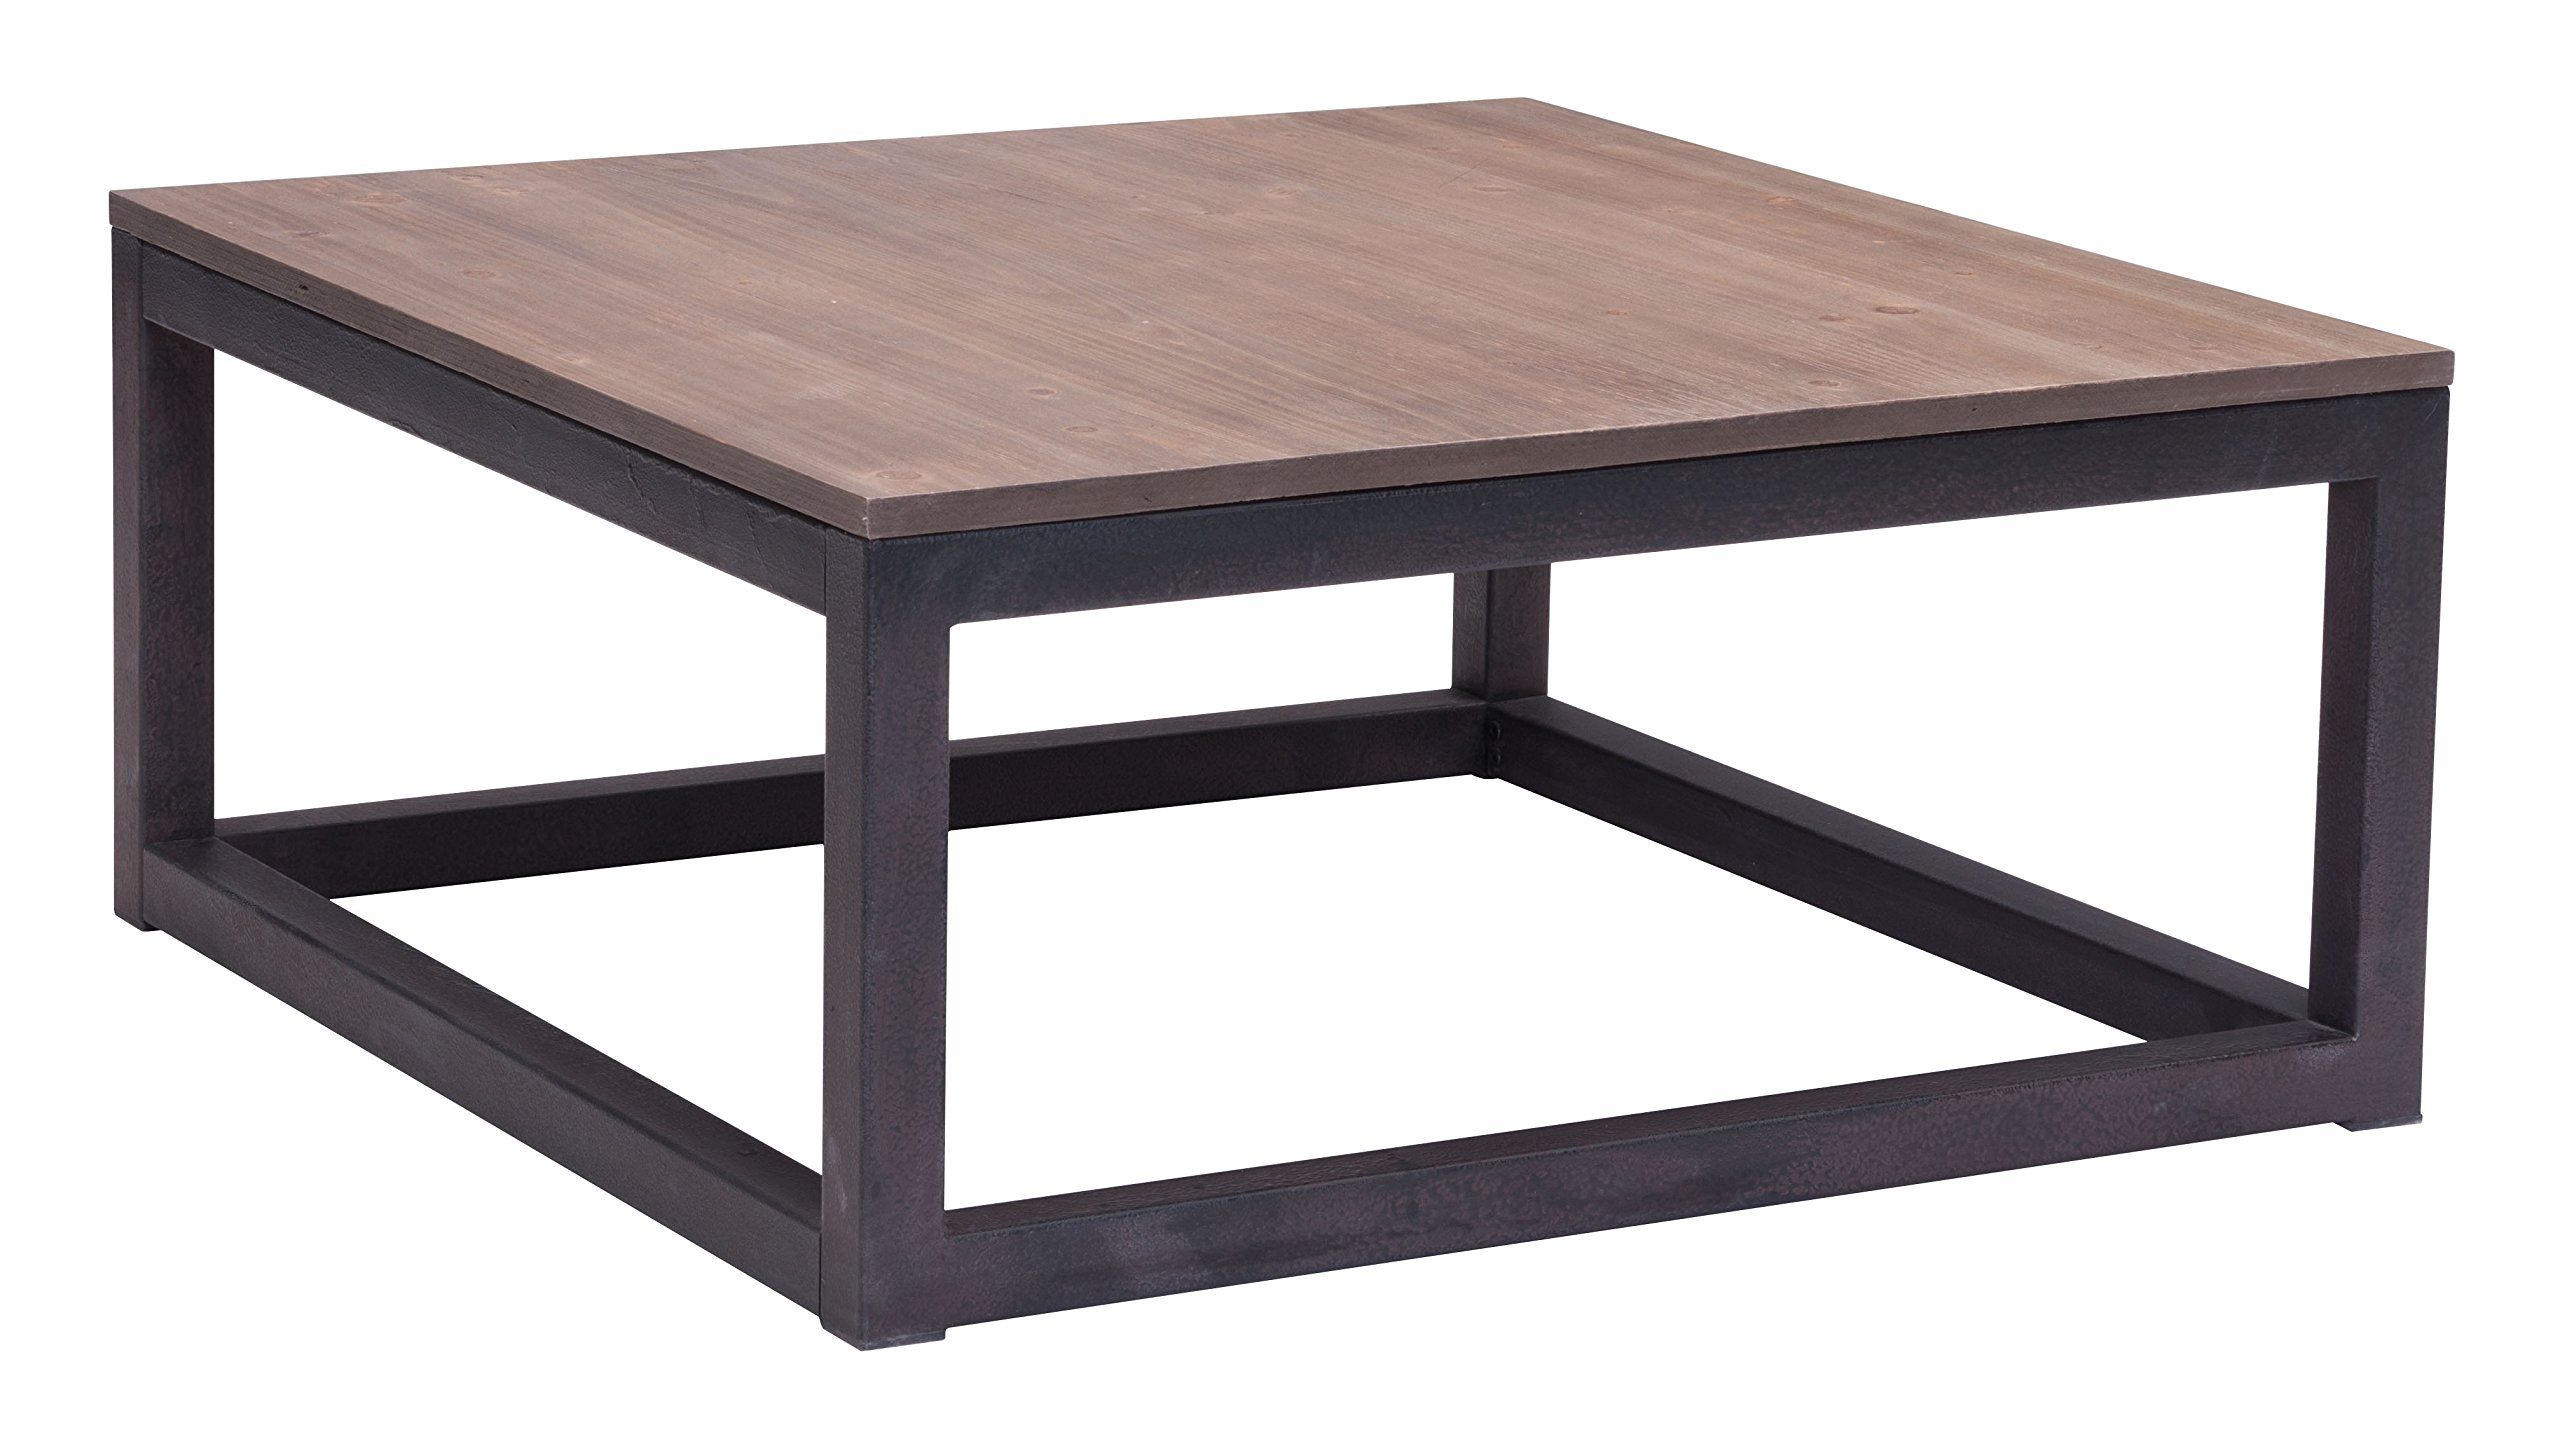 Zuo Civic Center Square Coffee Table - Product Type: square Coffee table Product Finish: metal Year Introduced: 2012 - living-room-furniture, living-room, coffee-tables - 81gBDeZLrzL -